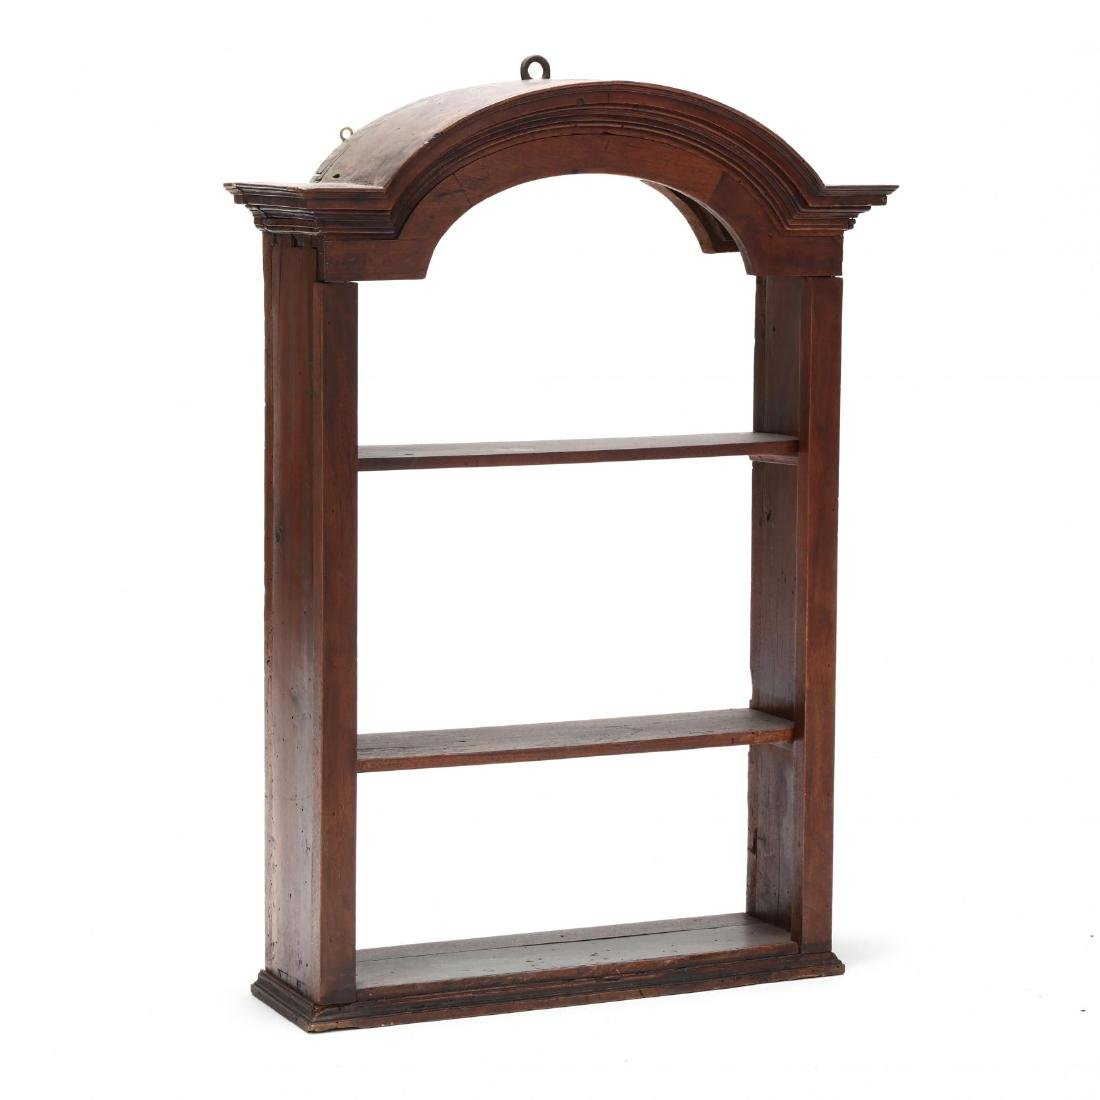 Antique Continental Hanging Display Cabinet